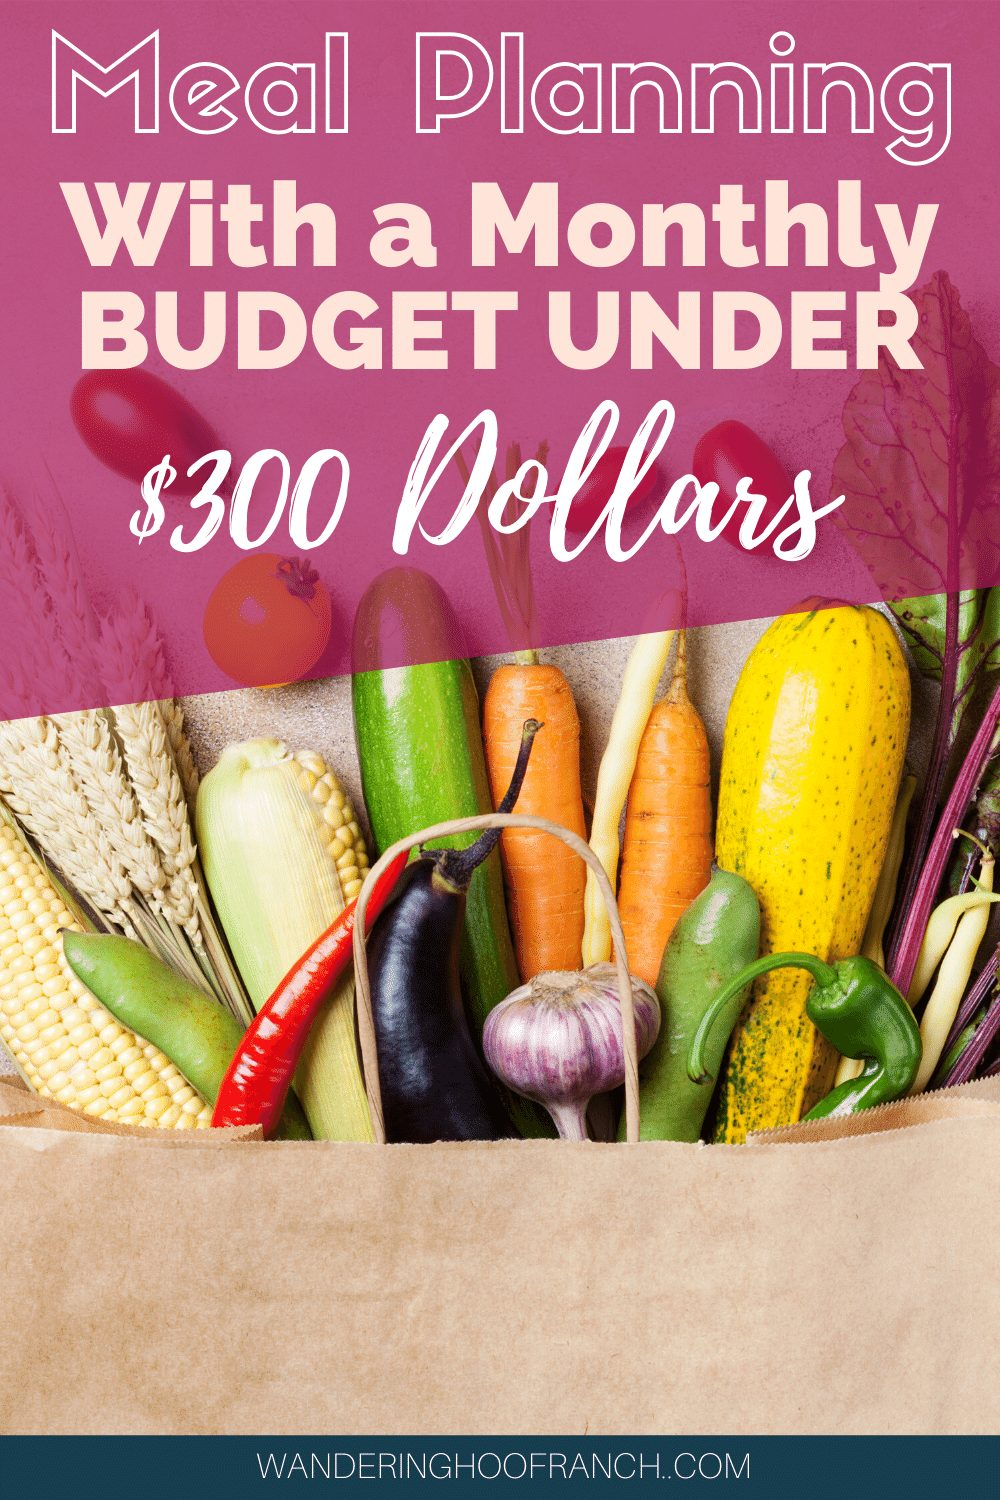 how to meal plan with a monthly budget under $300